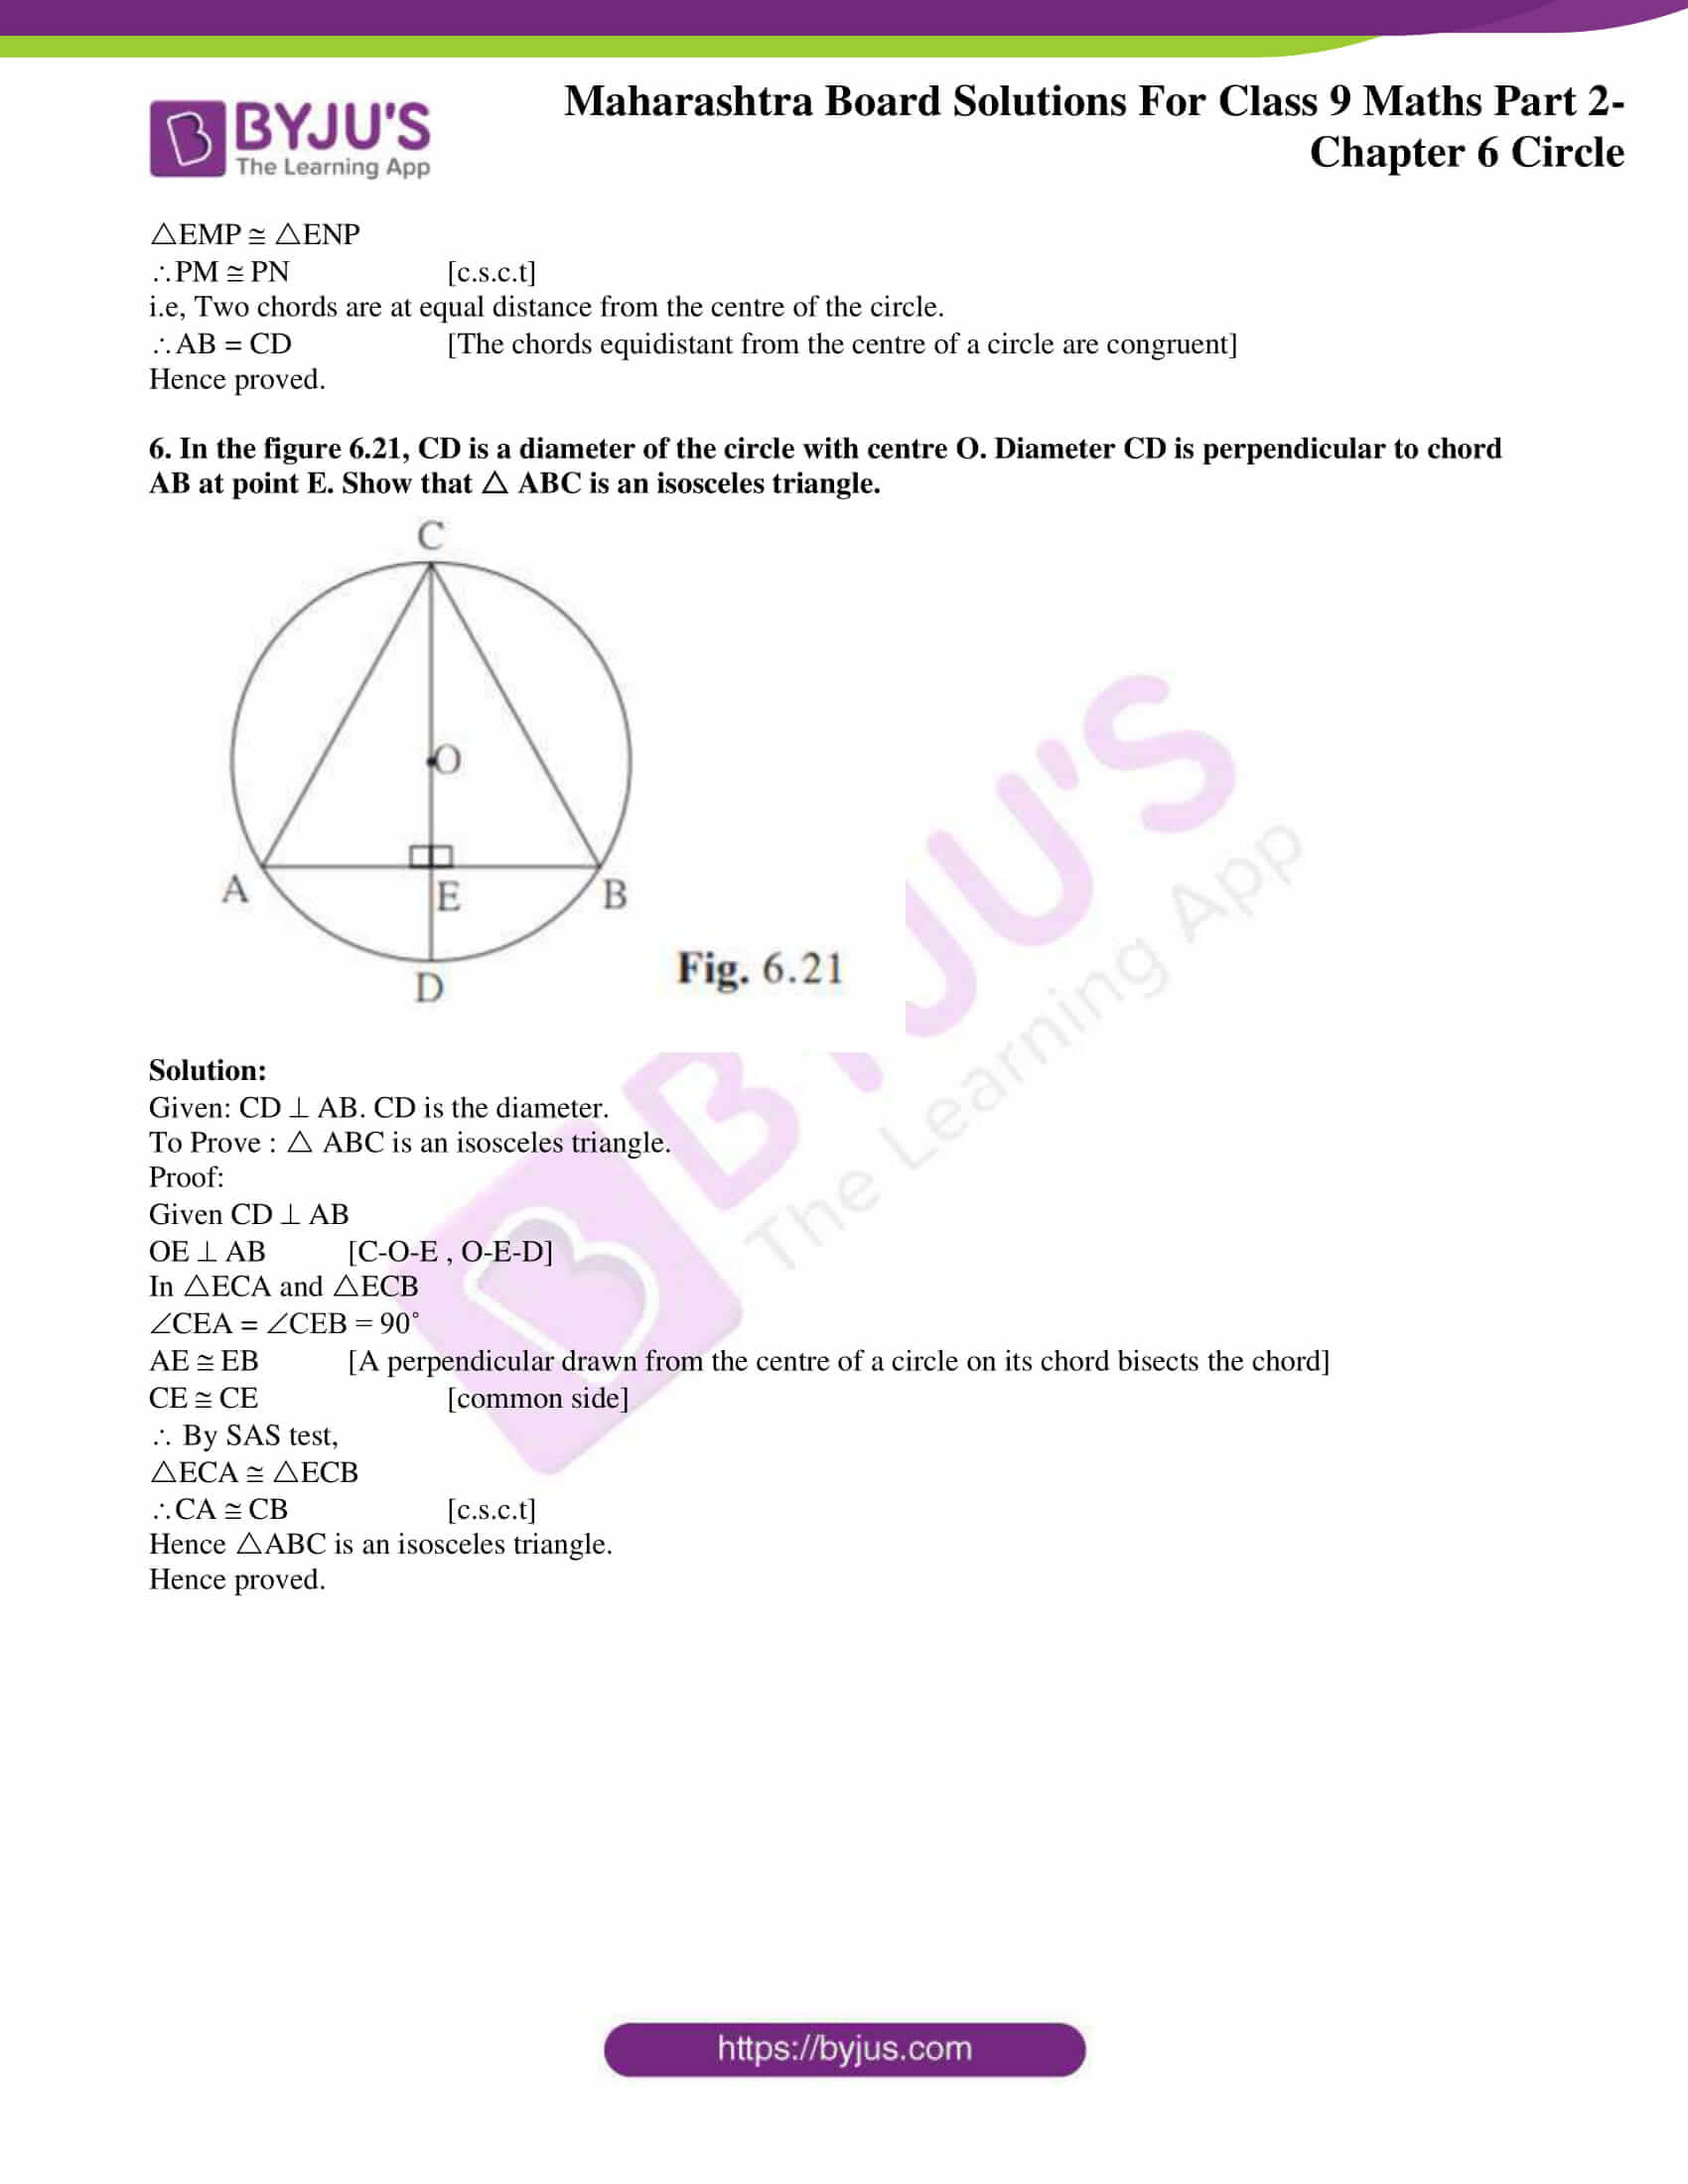 msbshse solutions for class 9 maths part 2 chapter 6 29